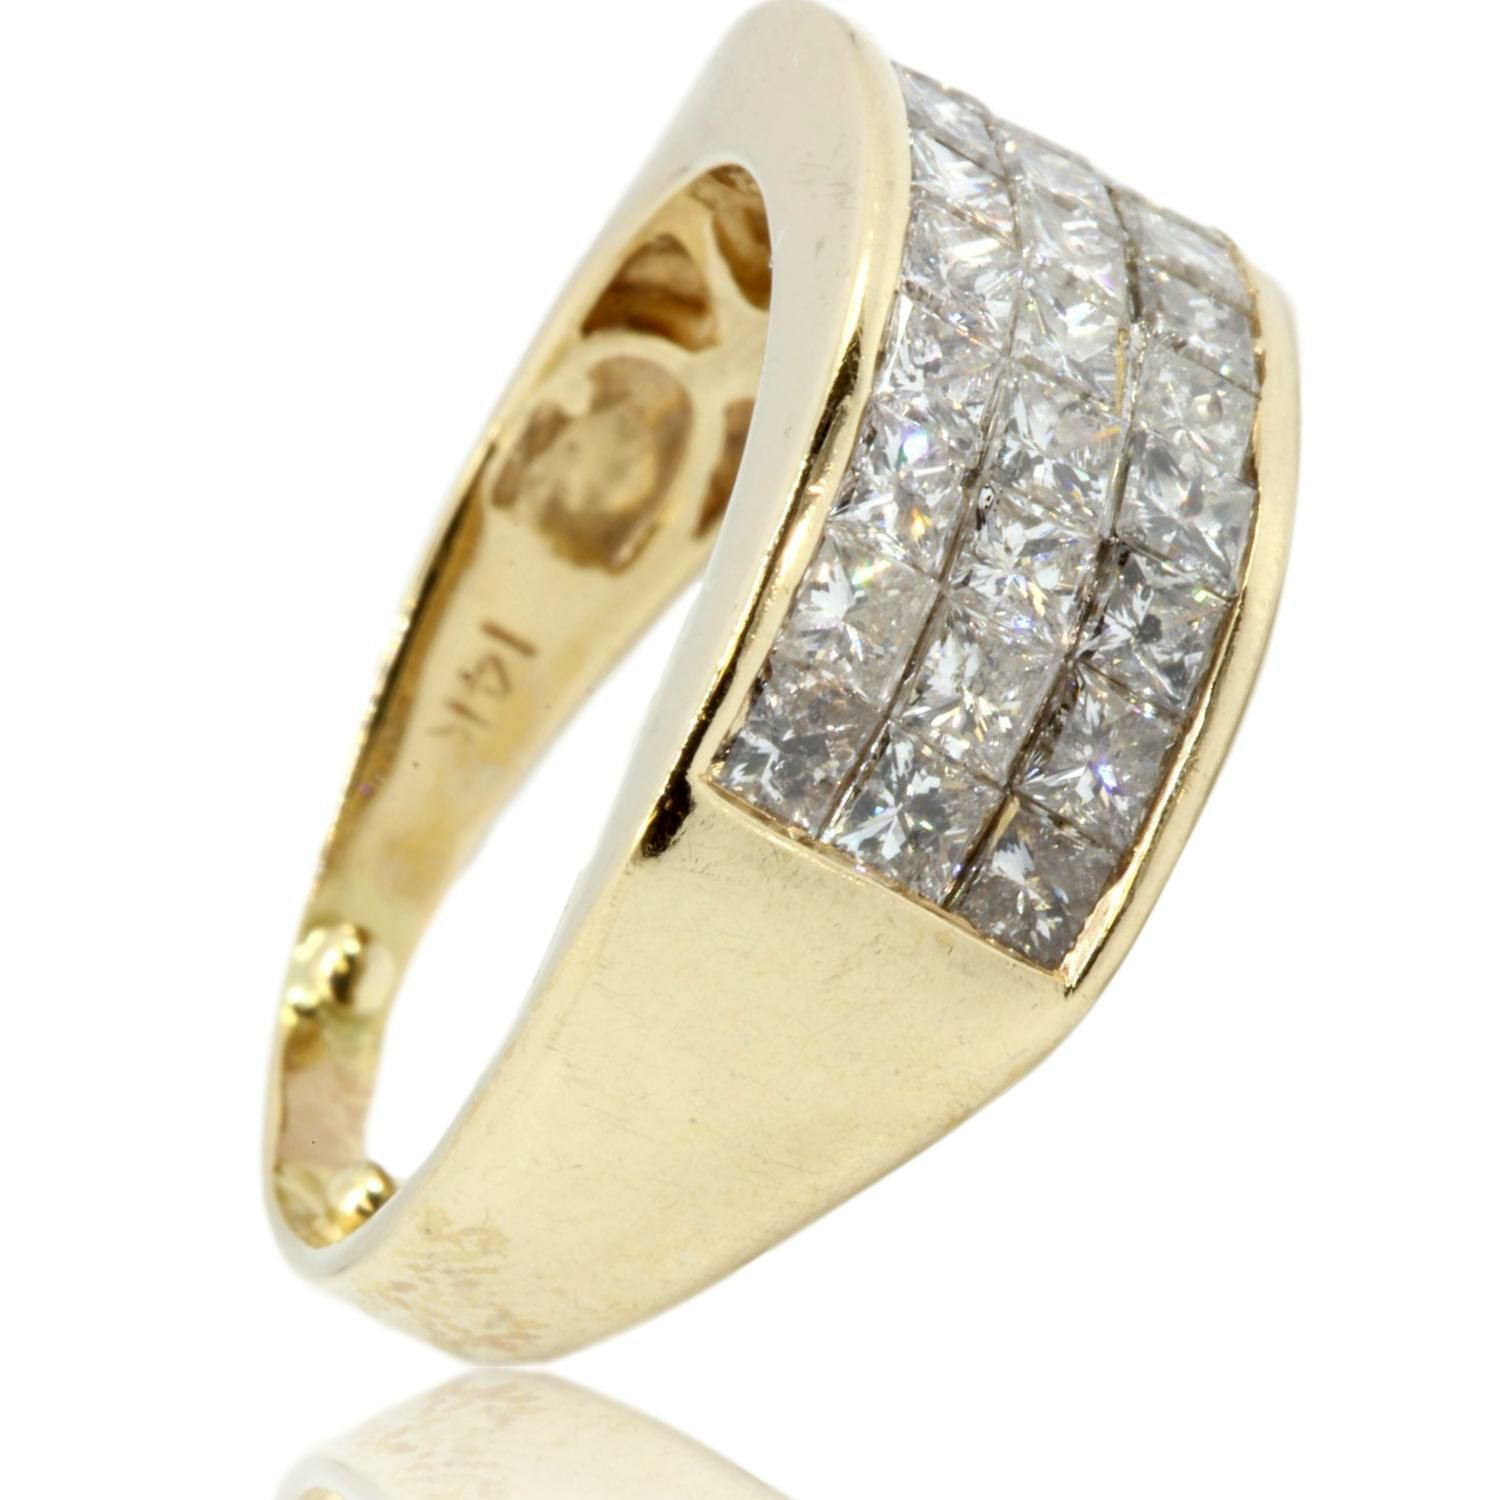 14K-Yellow-Gold-2.025-ctw-Princess-Cut-Diamond-Ring_87993A.jpg